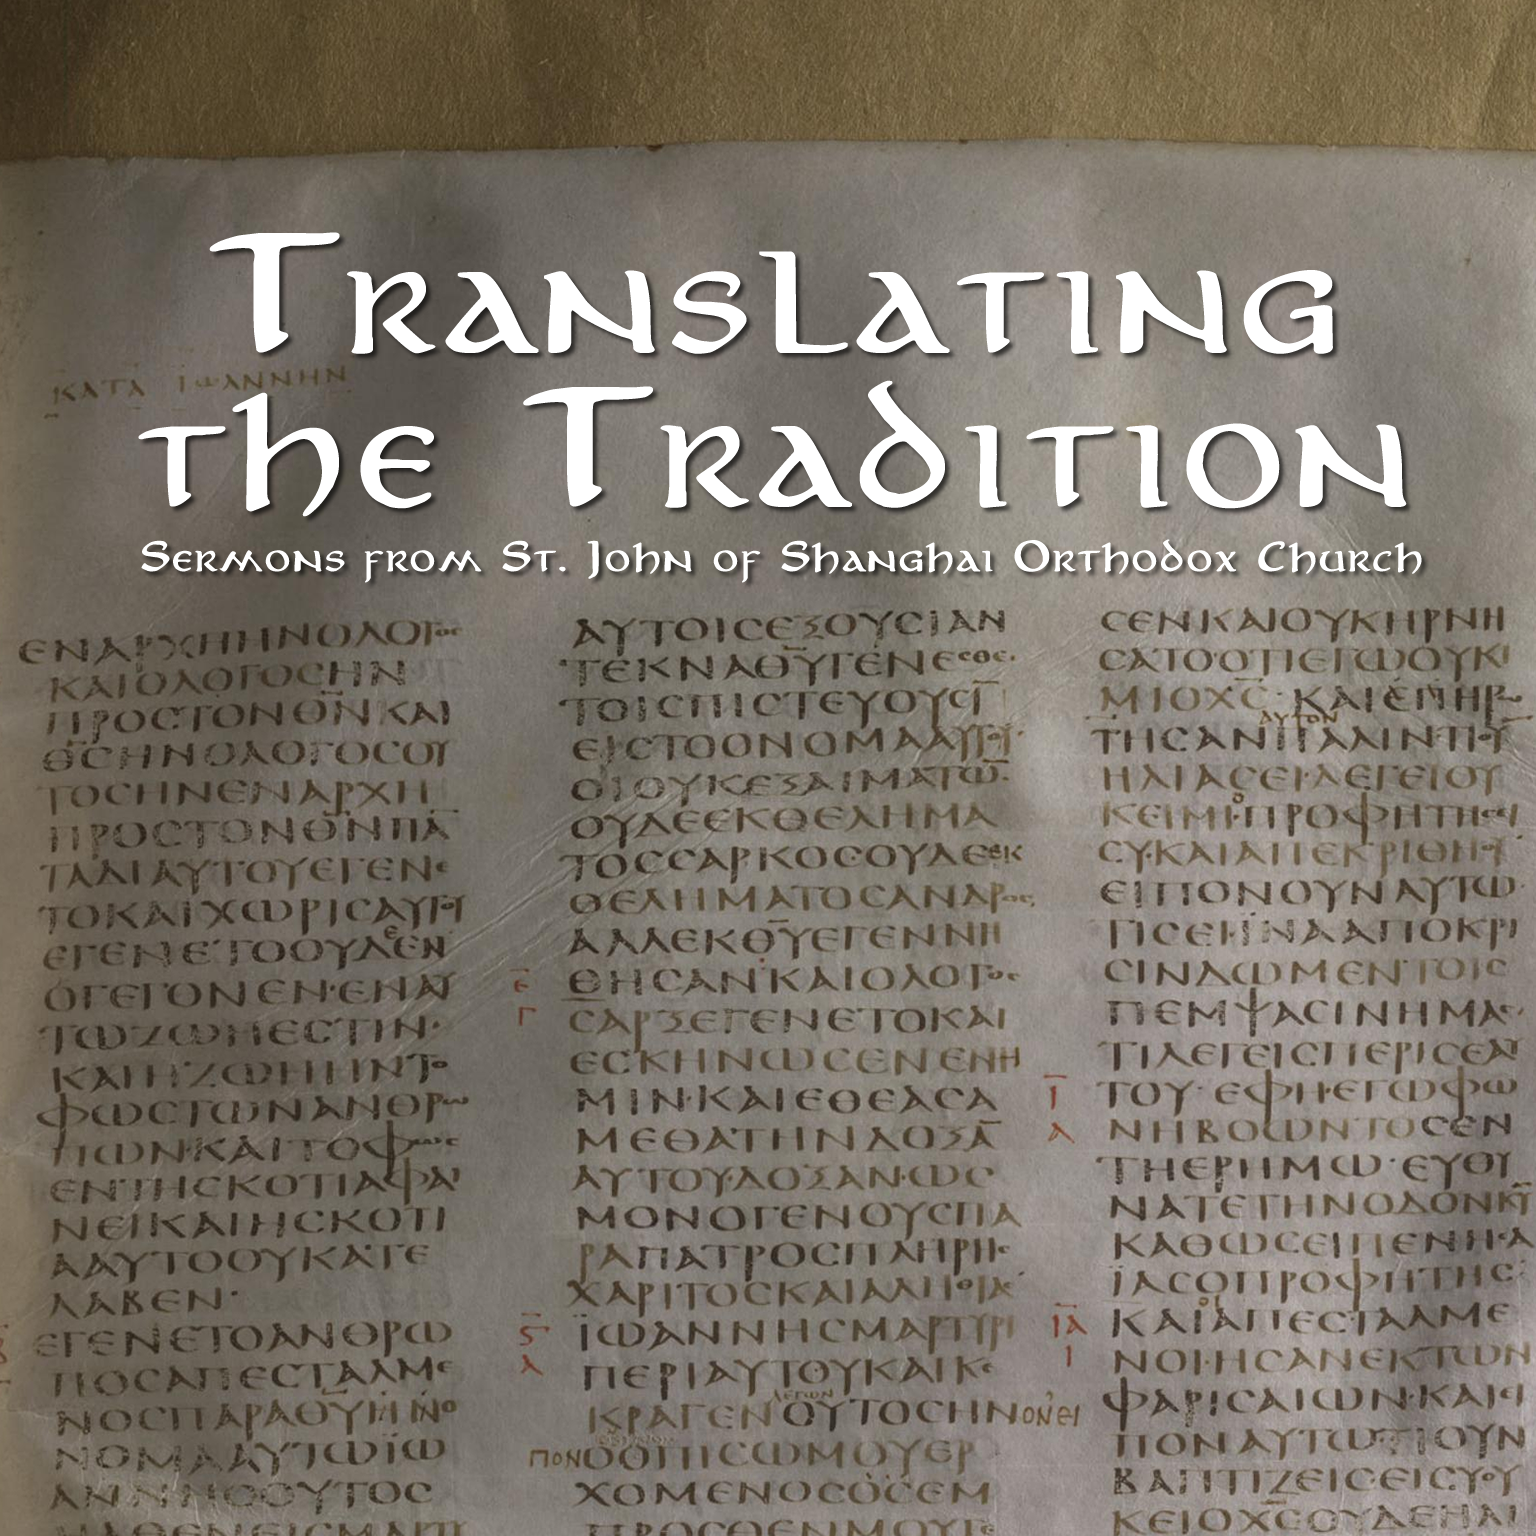 Translating the Tradition